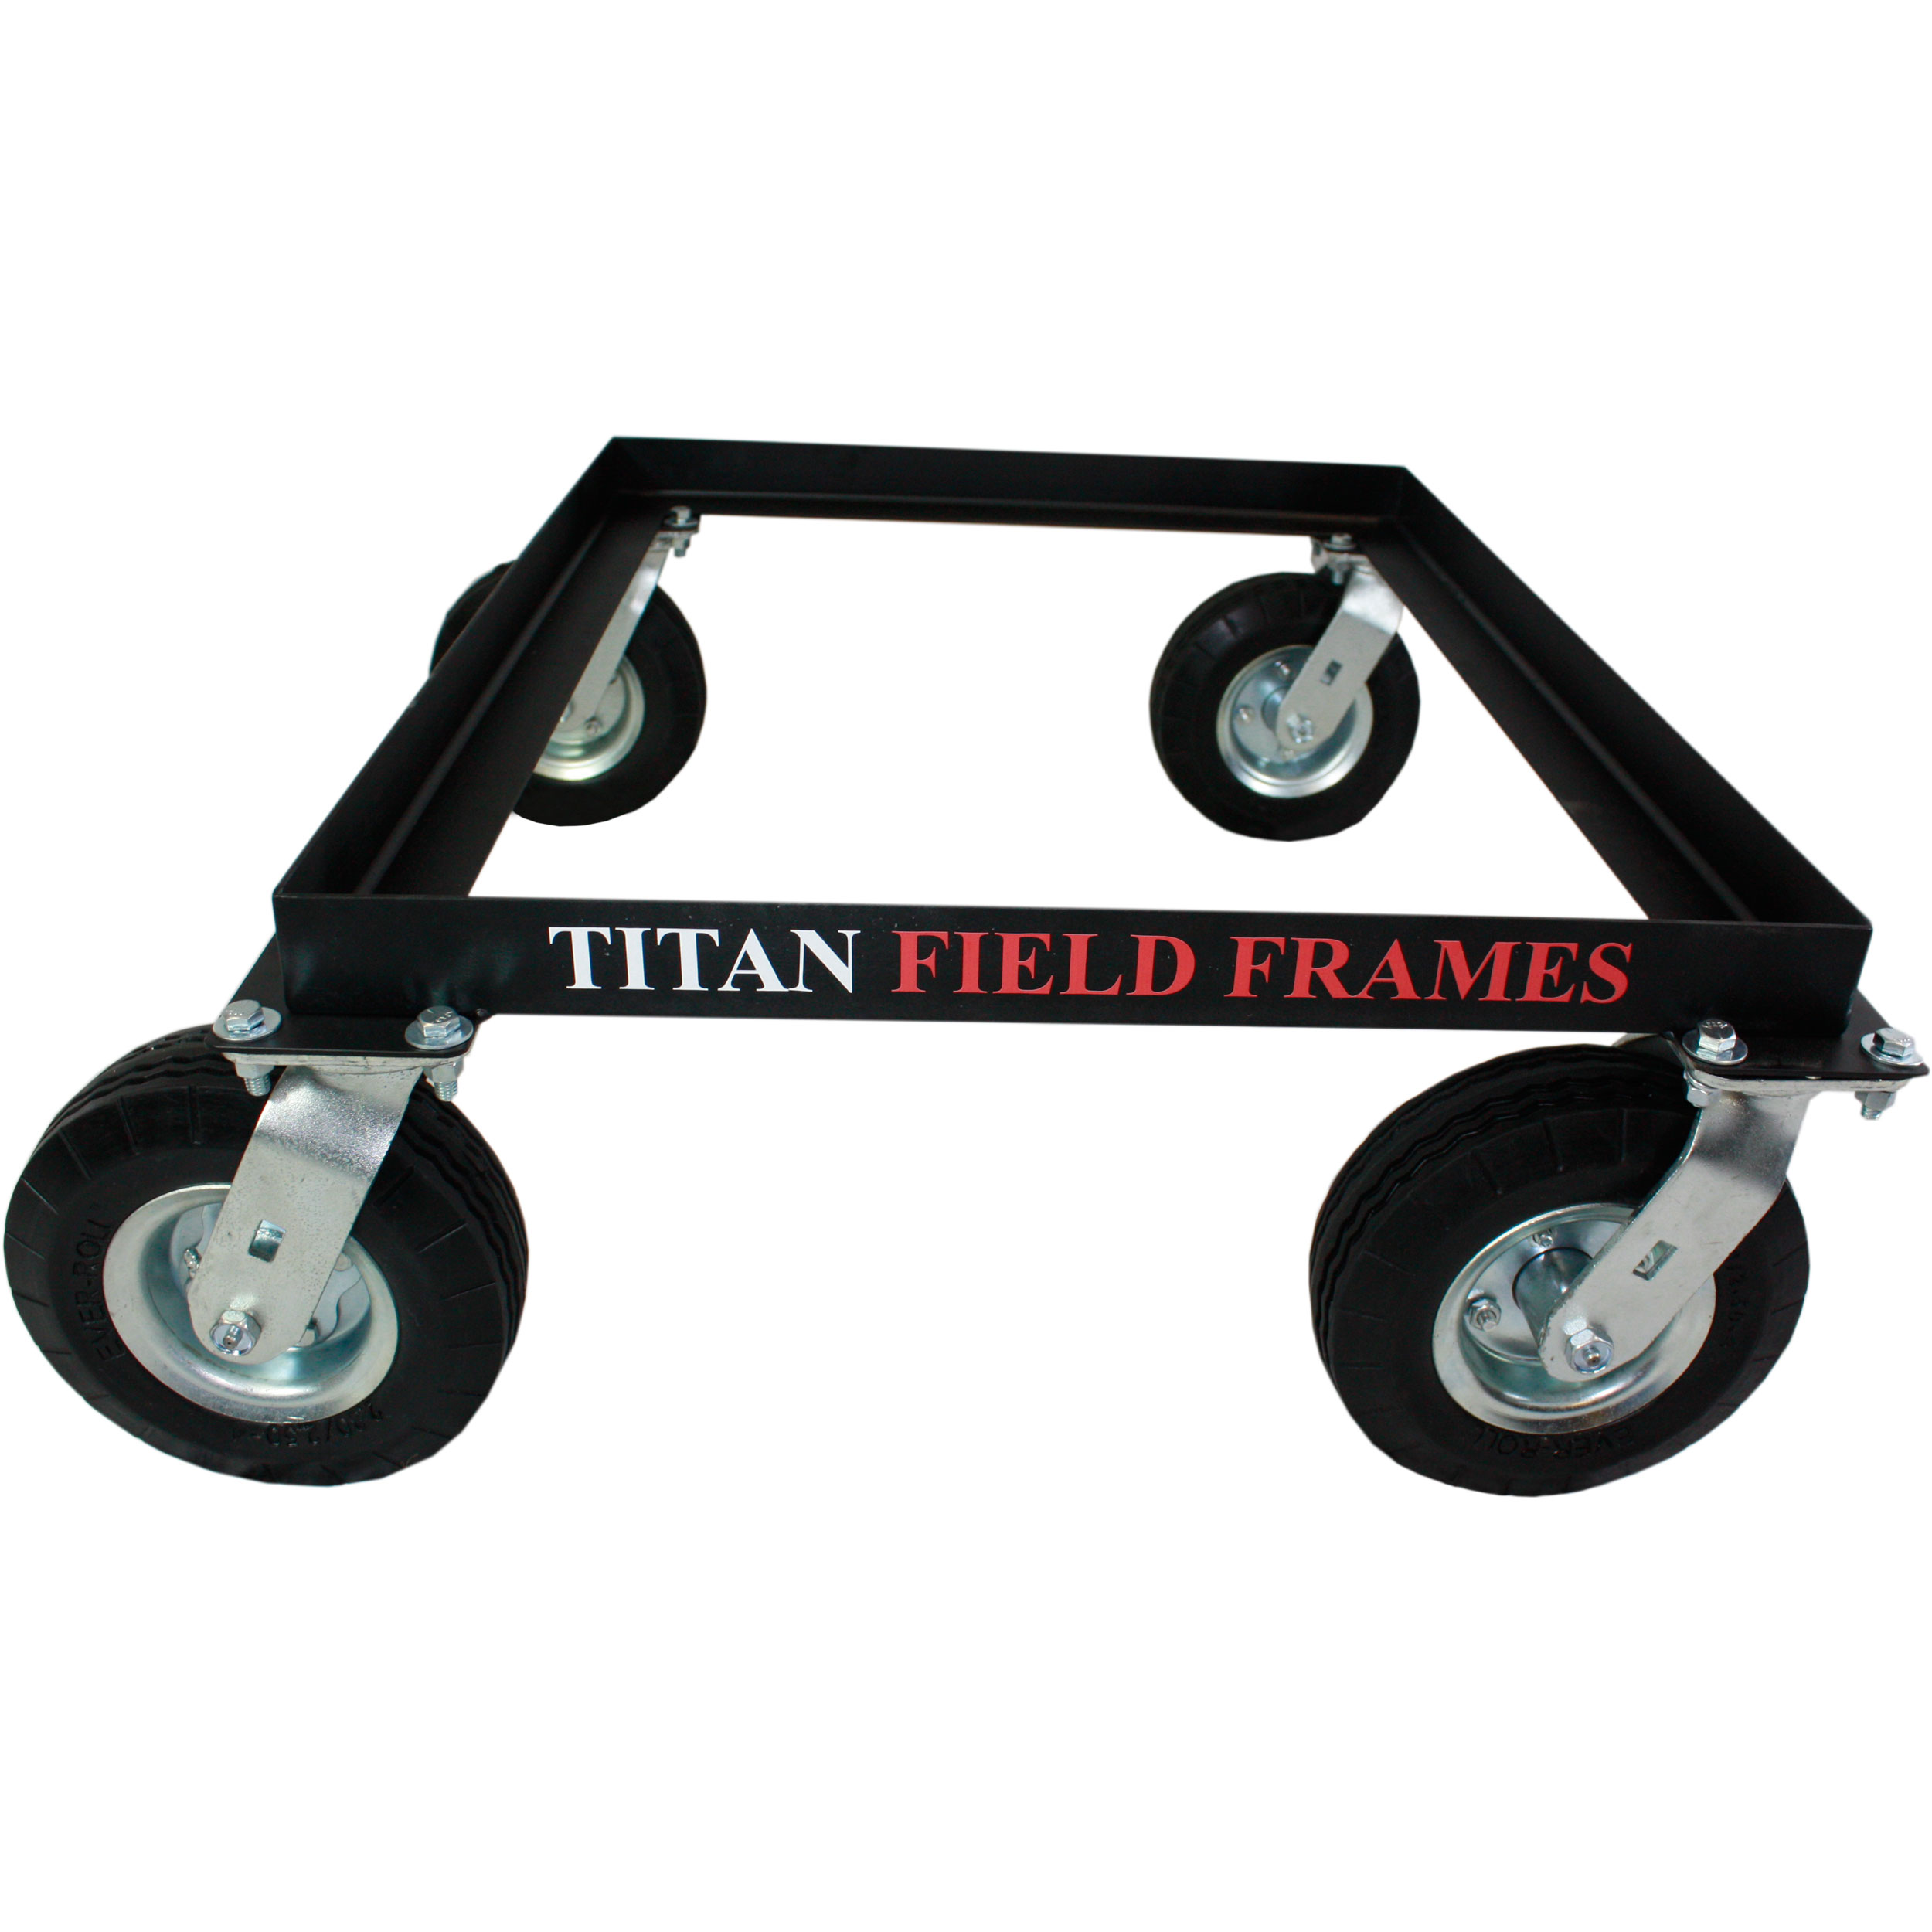 "Titan Gig Rig Platform with 8"" No-Flat Tires"